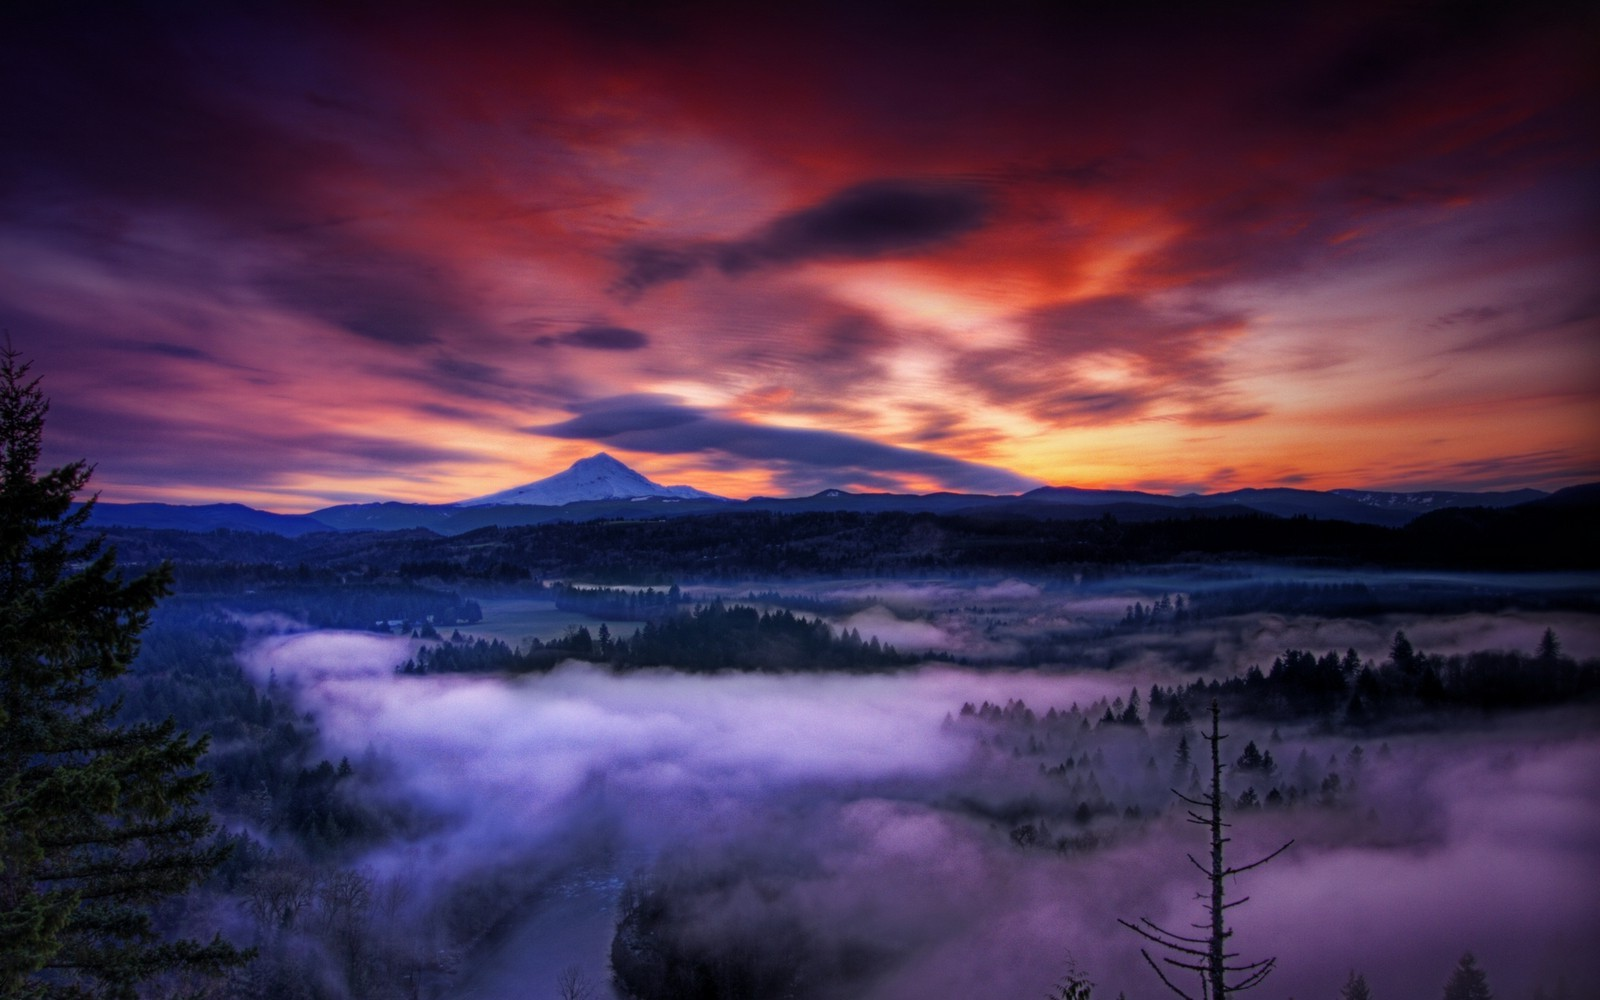 Fantasy Forest 3d Desktop Wallpaper Nature Landscape Sunset Mist Mountain Forest Clouds